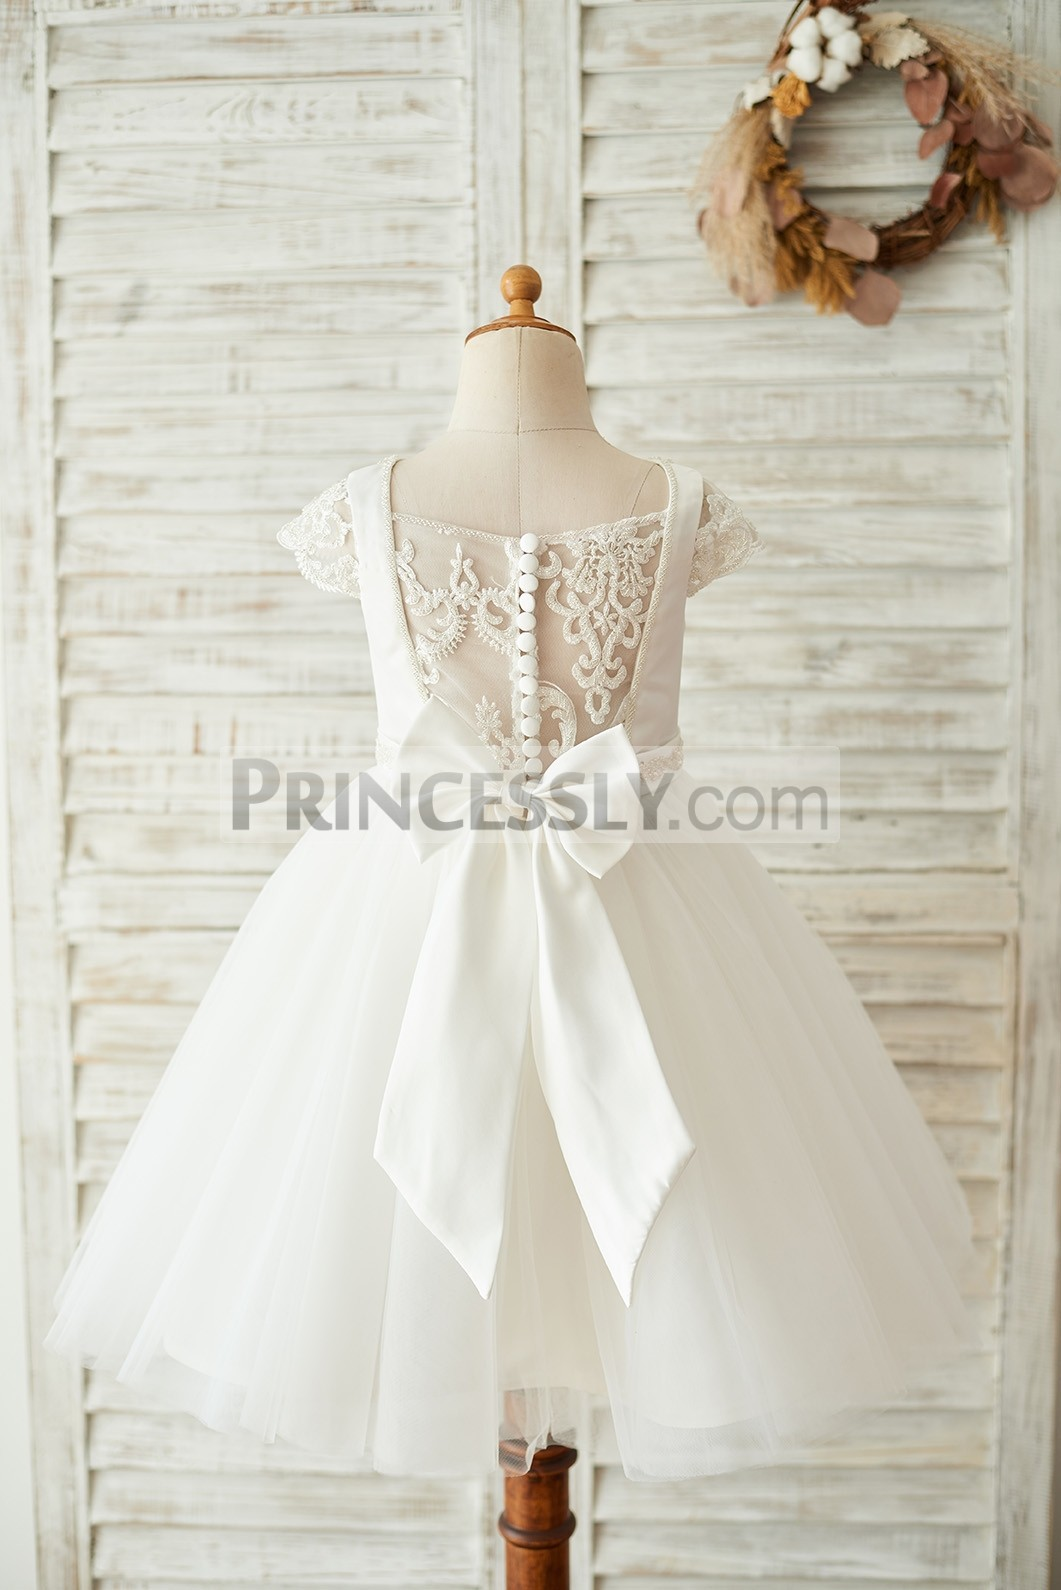 Princessly.com-K1003672-Satin Tulle Beaded Lace Cap Sleeves Sheer Back Wedding Flower Girl Dress with Bow-31